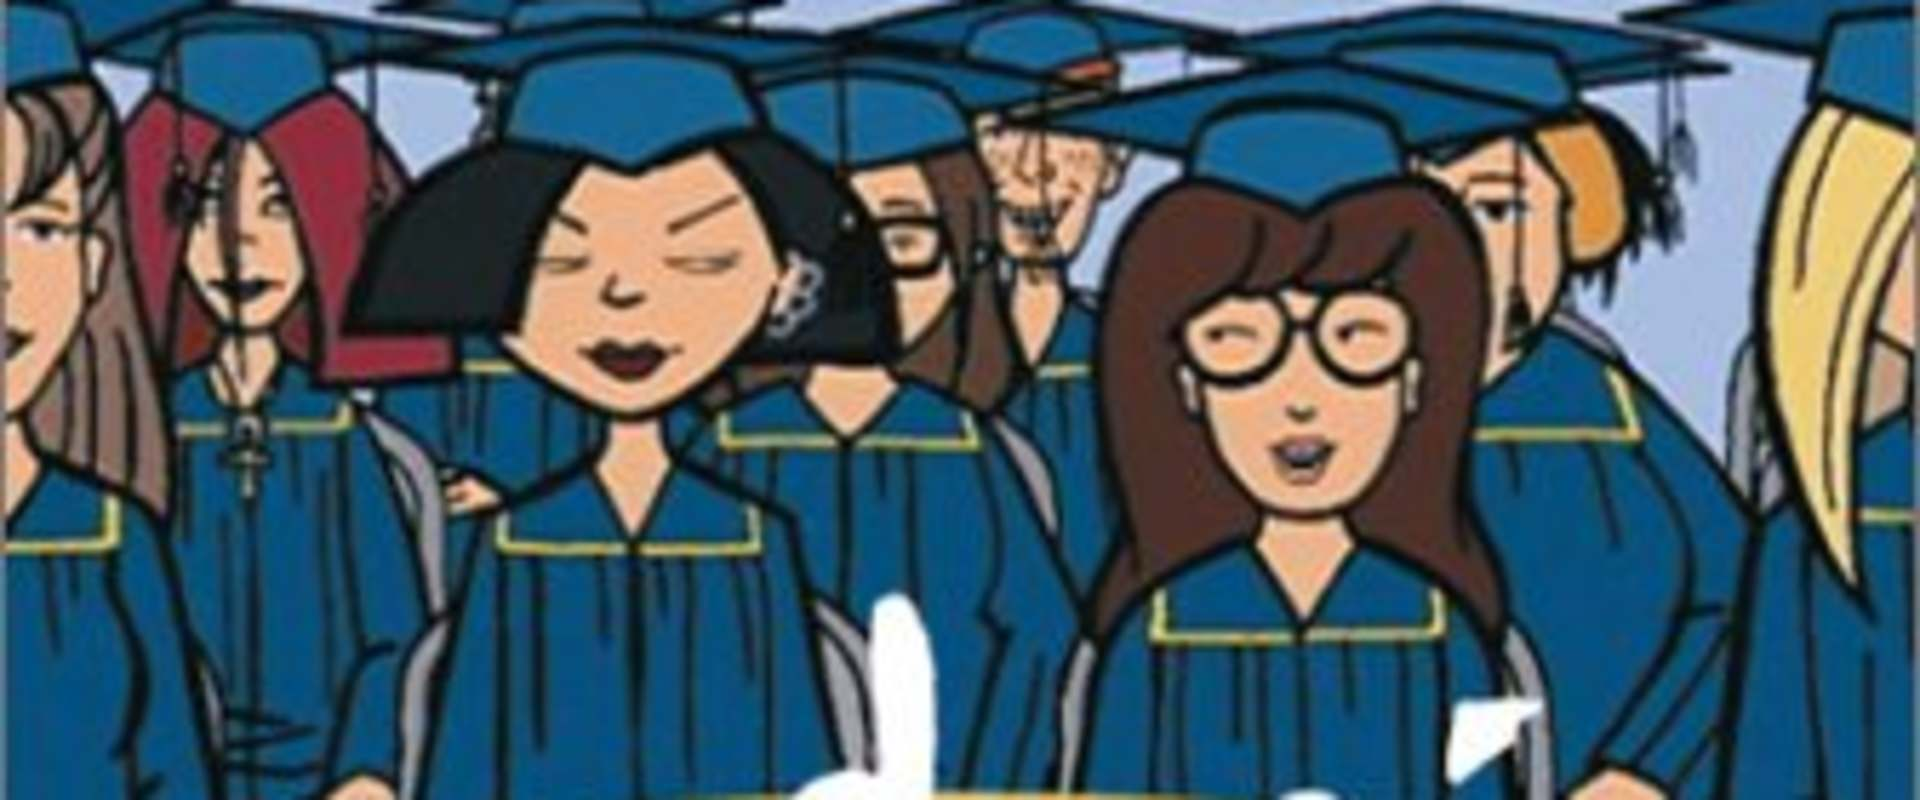 Daria in 'Is It College Yet?' background 2